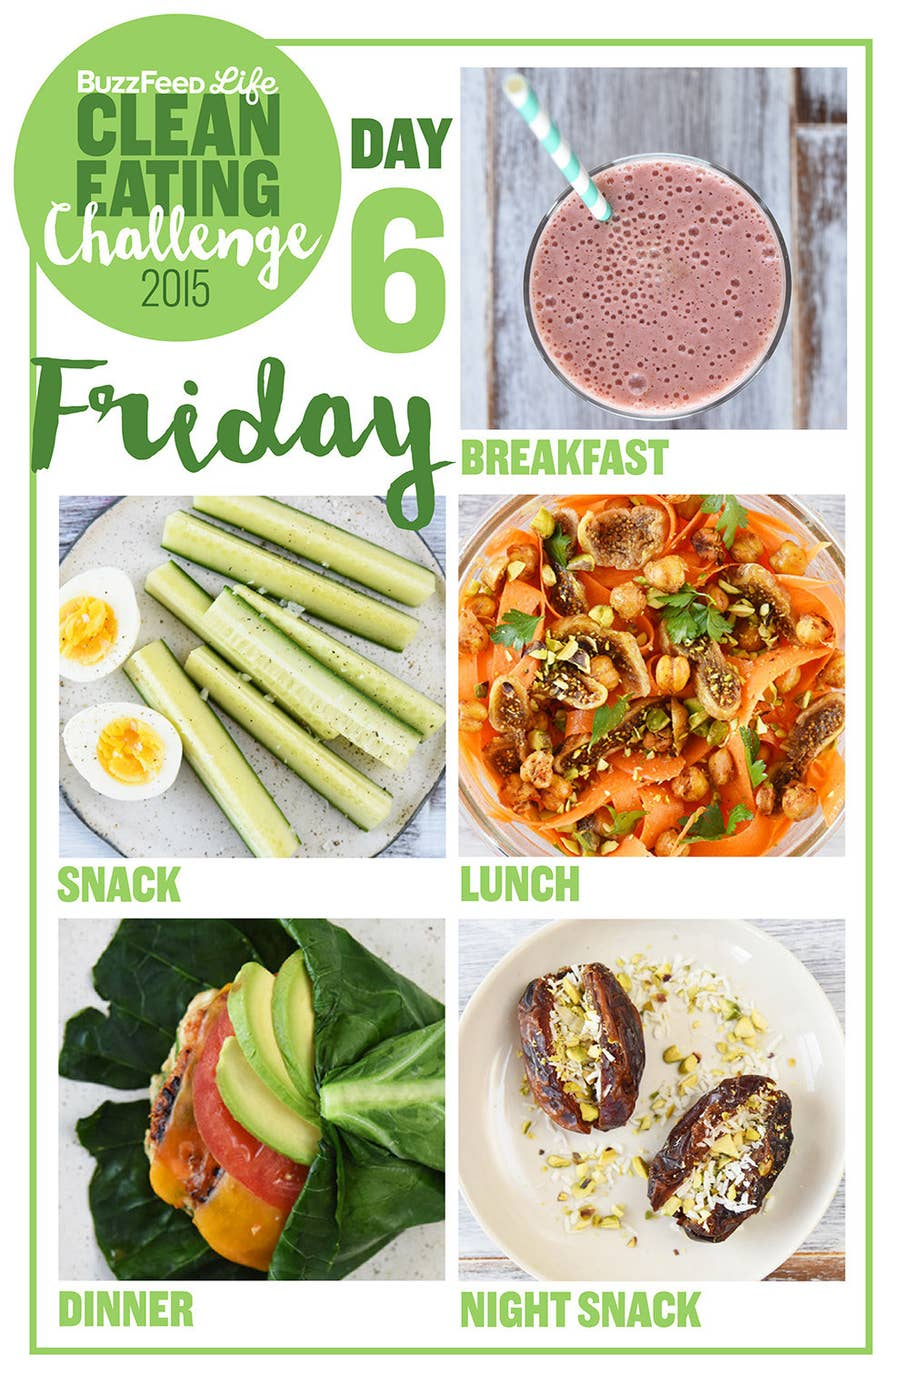 Here's A Two Week Clean Eating Challenge That's Actually Delicious